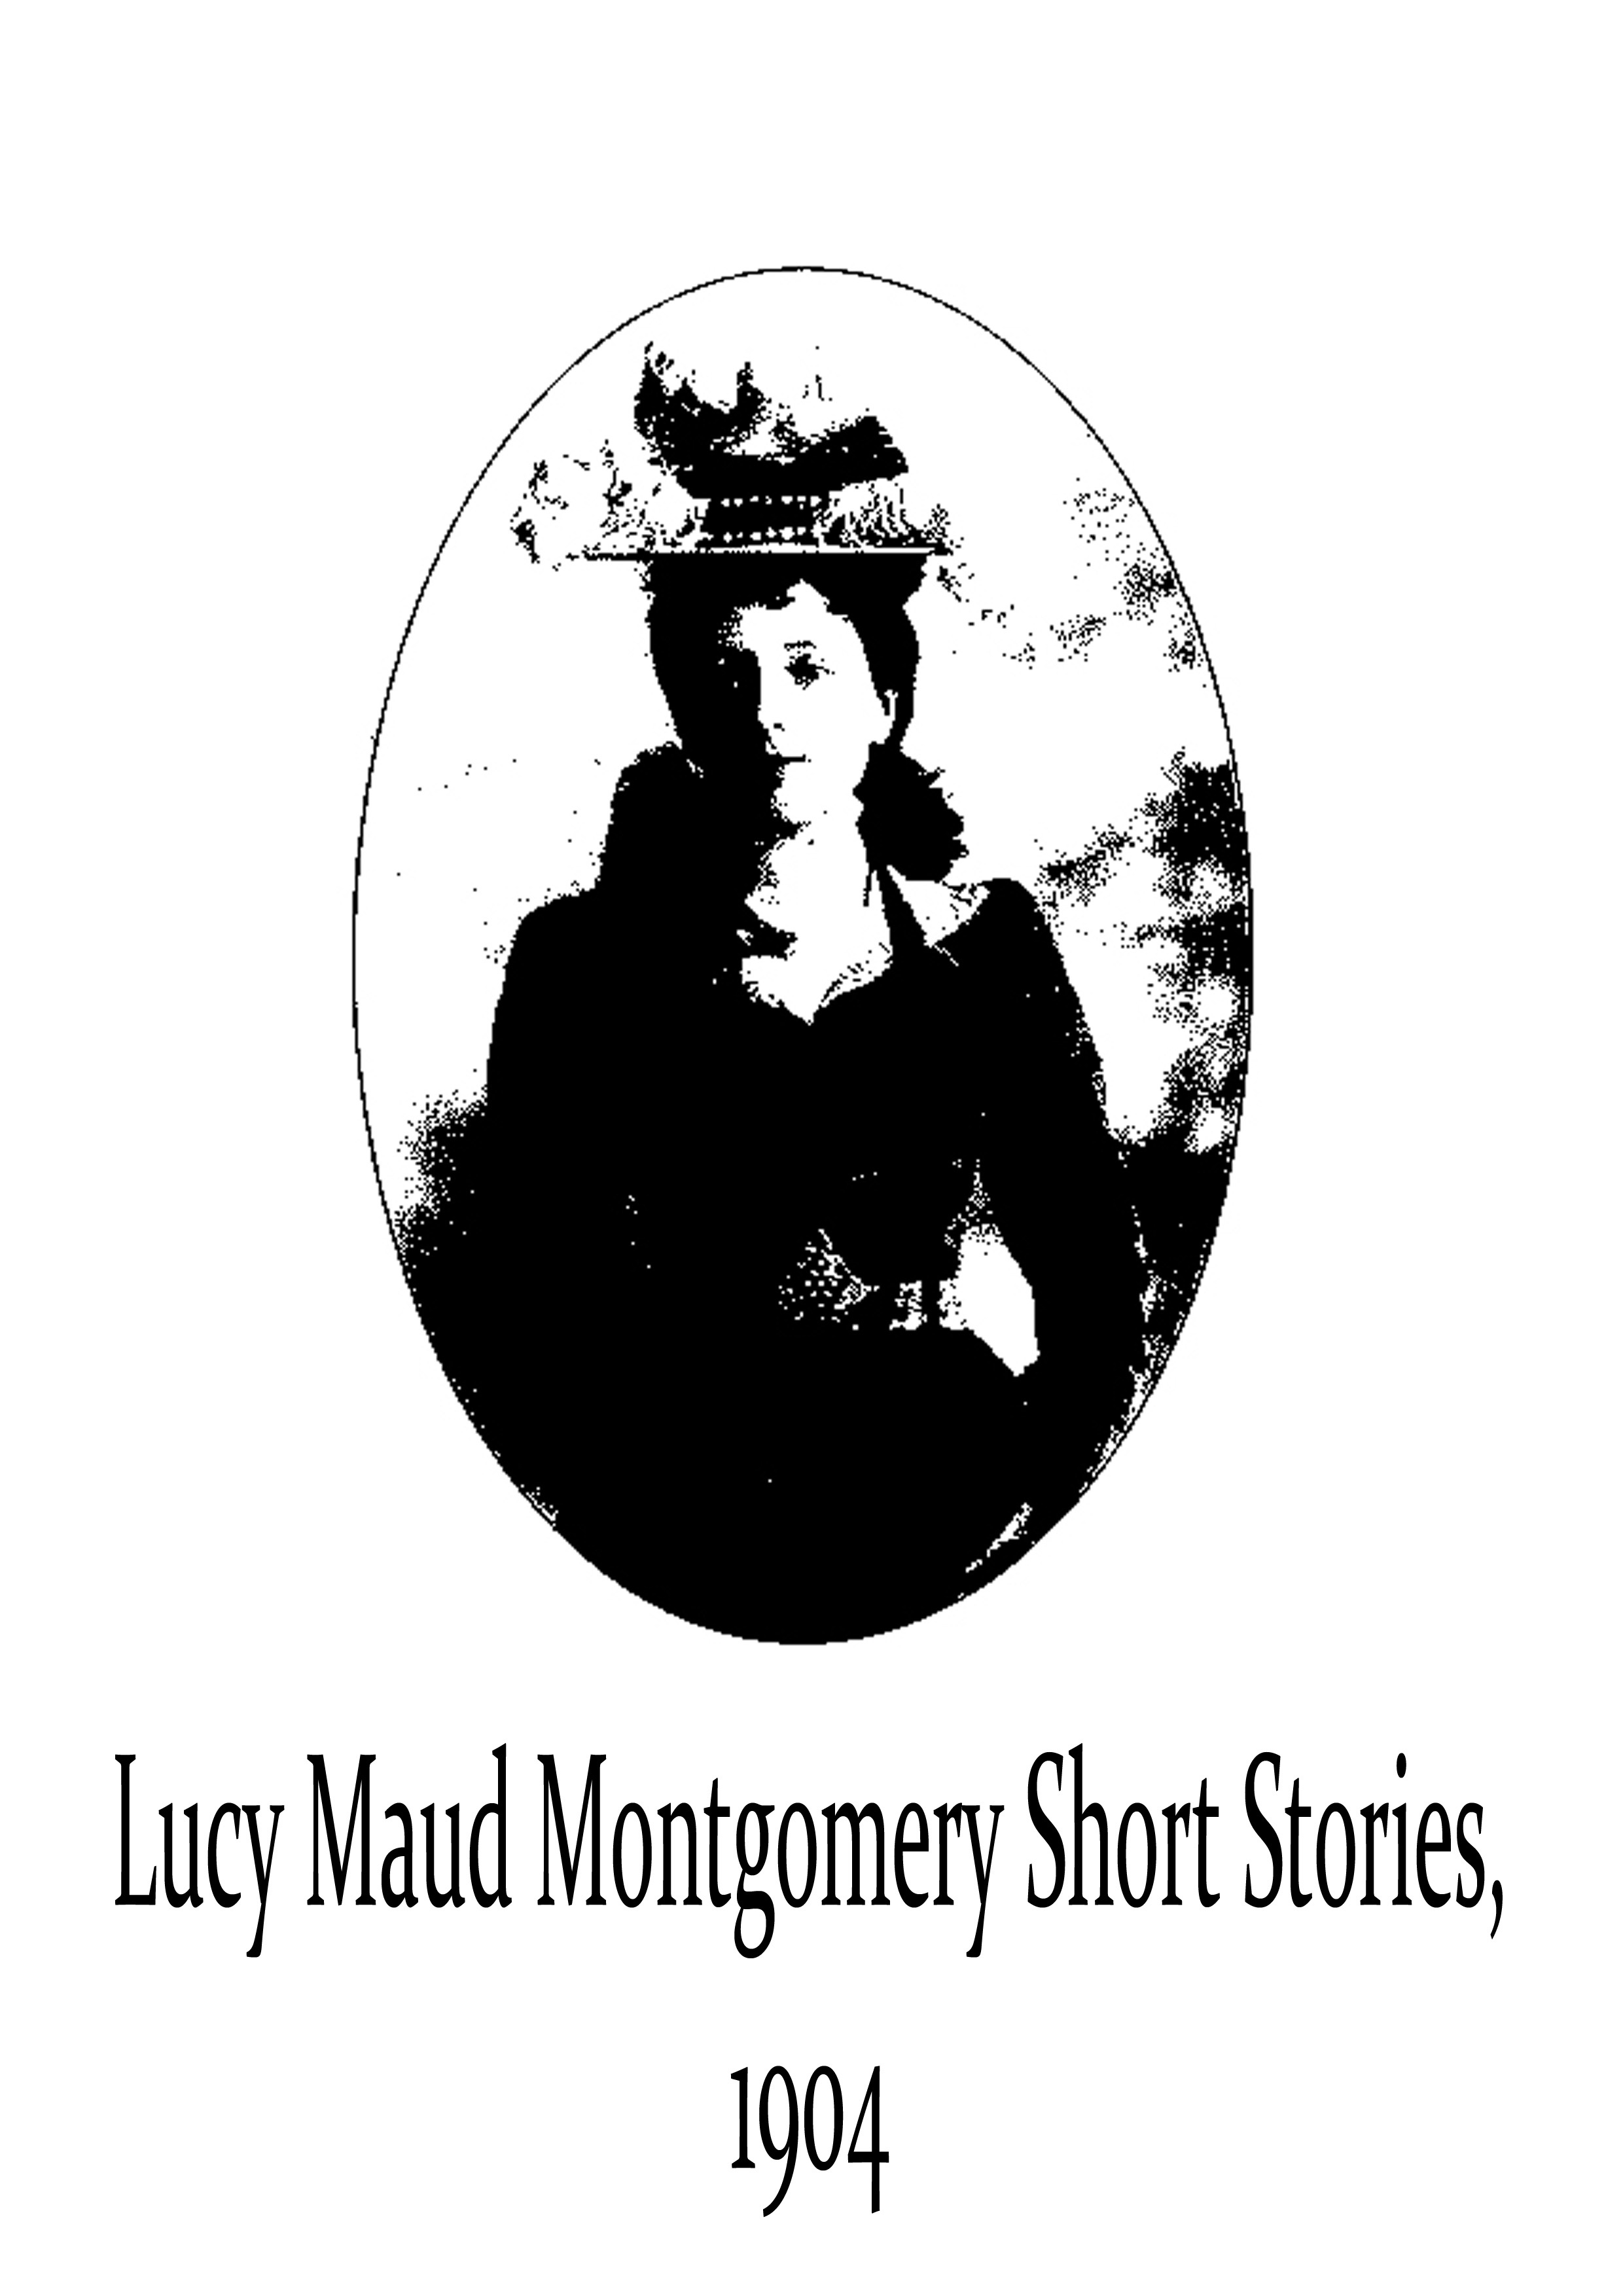 Lucy Maud Montgomery Short Stories, 1904 By: Lucy Maud Montgomery